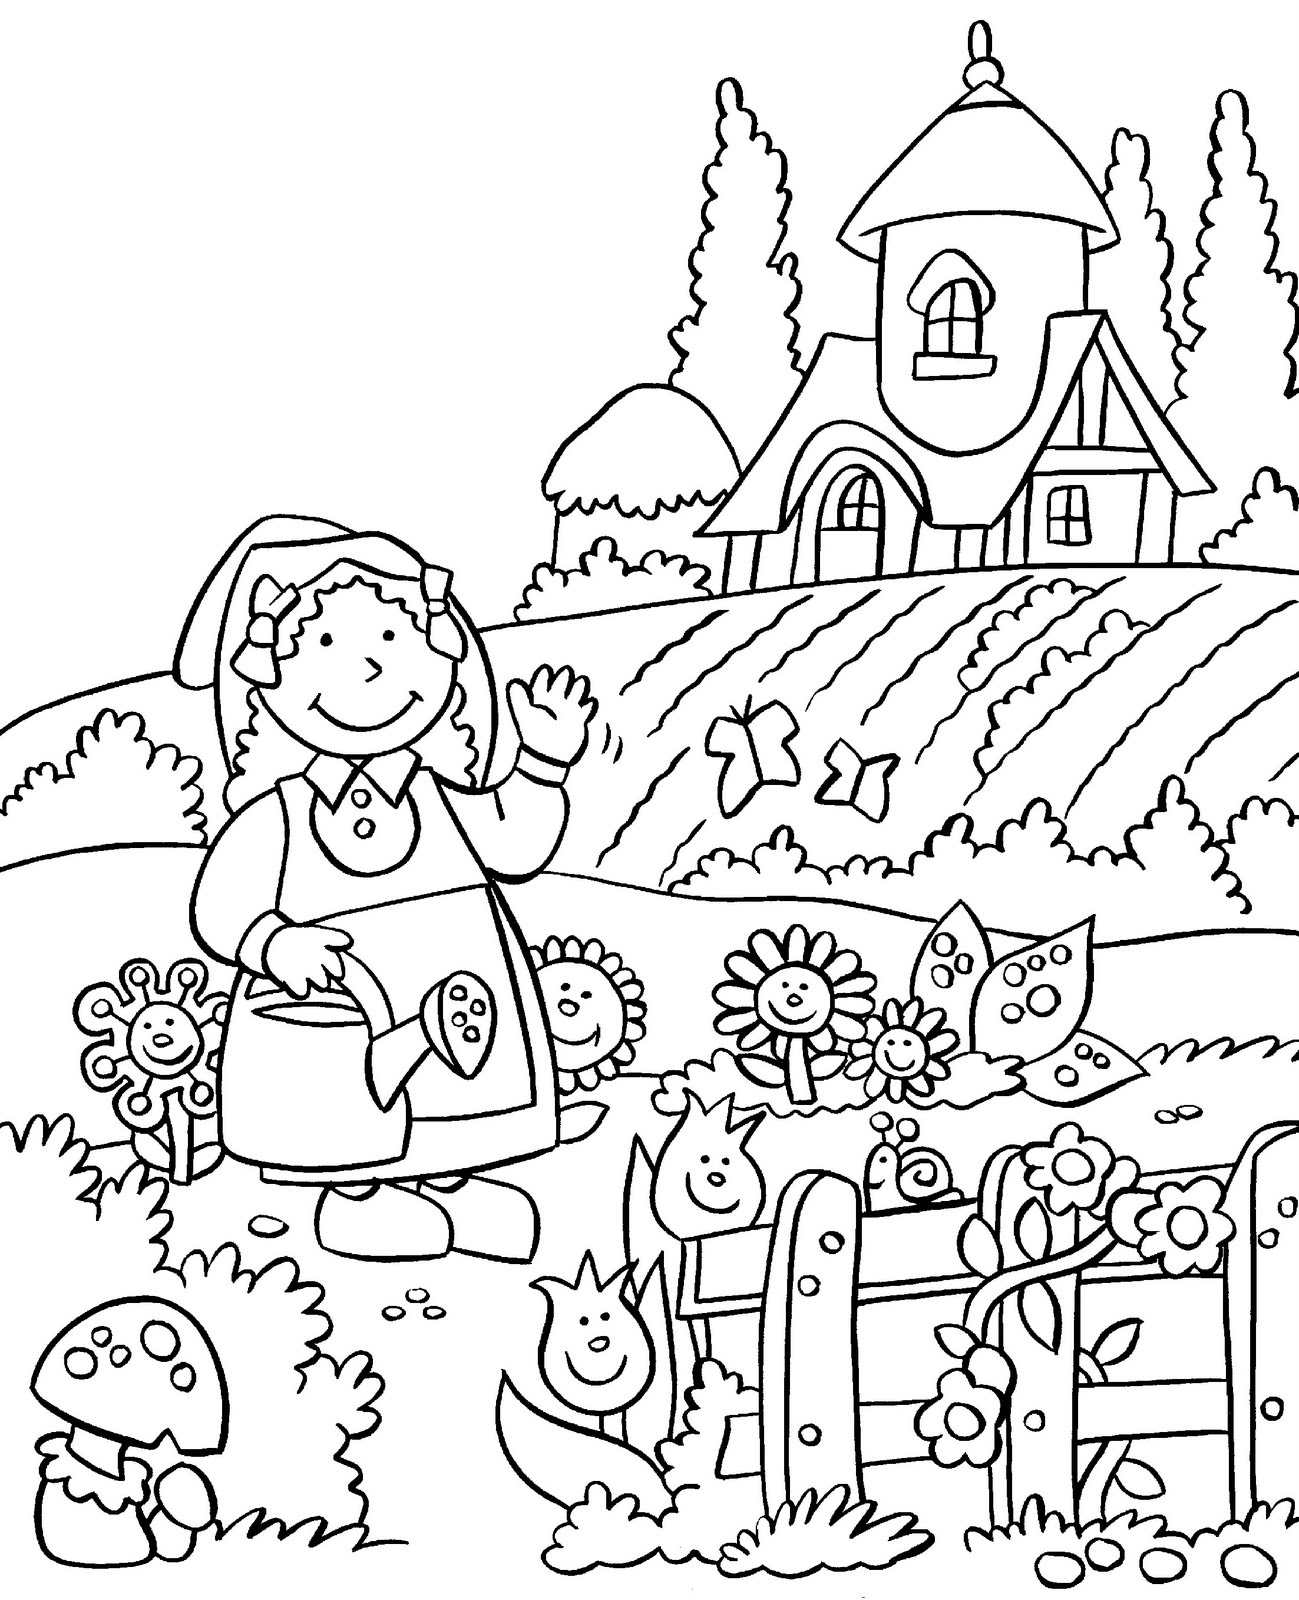 Vegetable Garden Drawing At Getdrawings